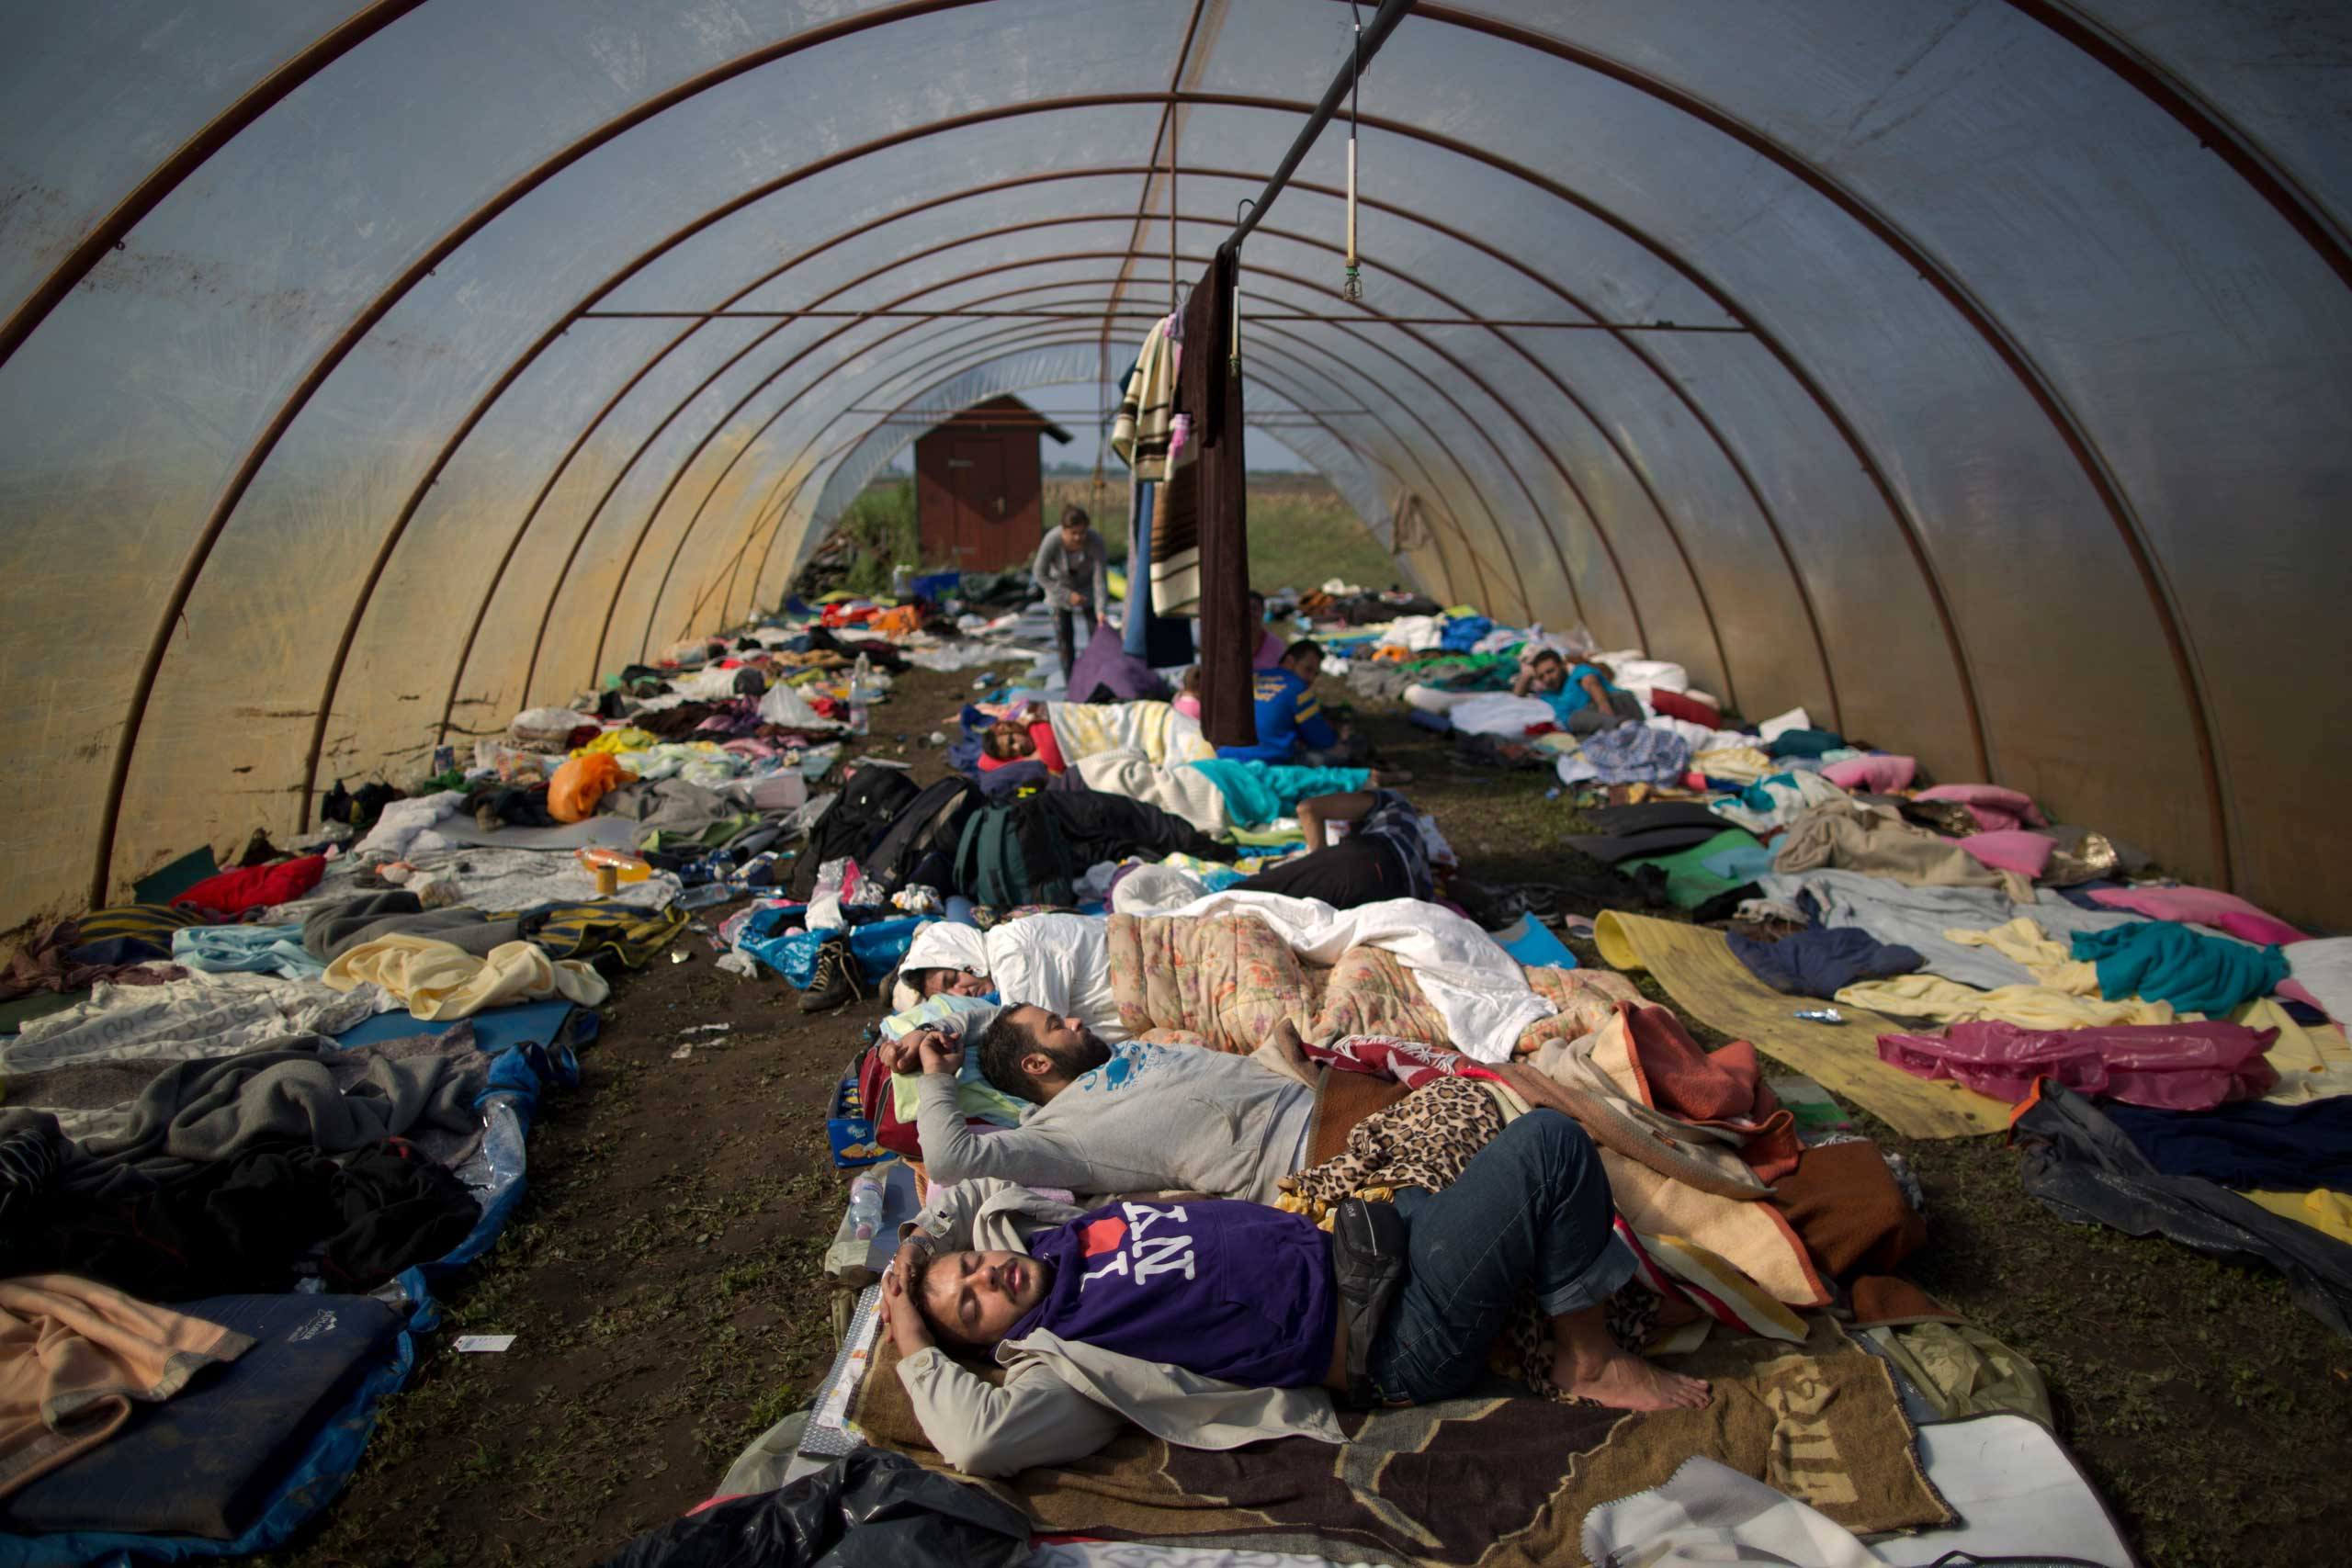 Syrian people sleep inside a greenhouse at a makeshift camp for asylum seekers near Roszke, southern Hungary, on Sept. 13, 2015.